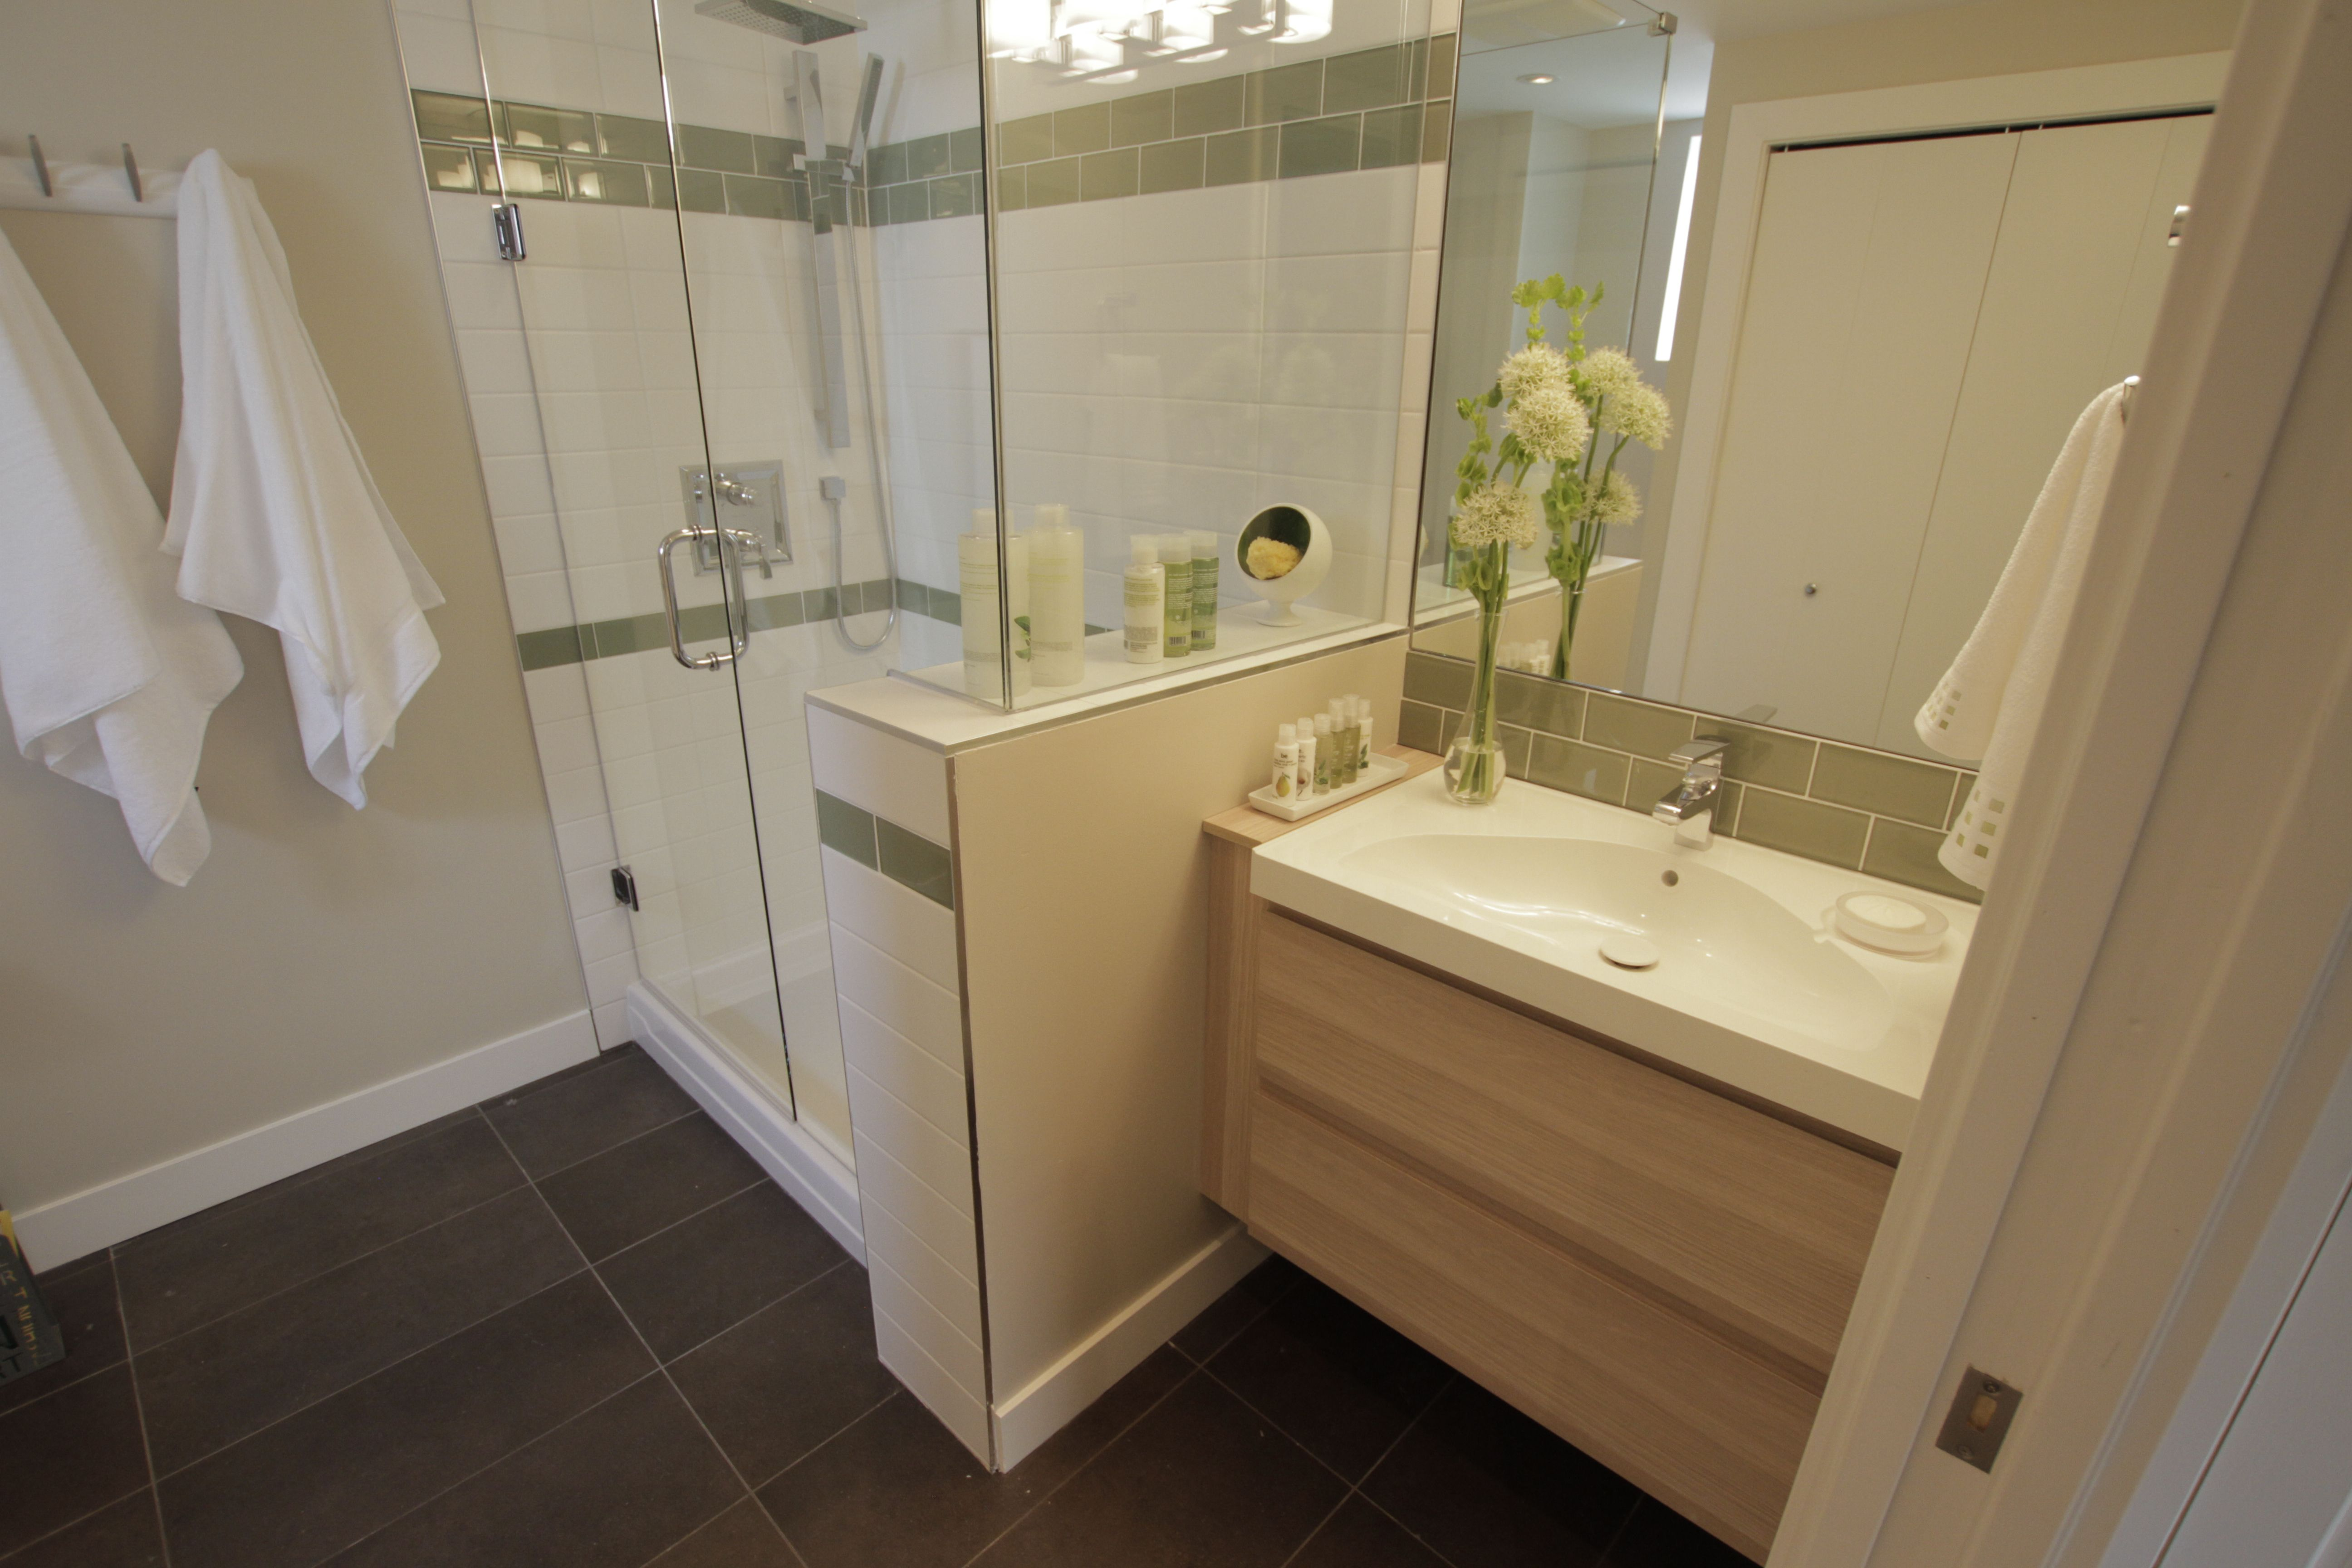 Property brothers bathrooms 28 images property for Z gallerie bathroom design